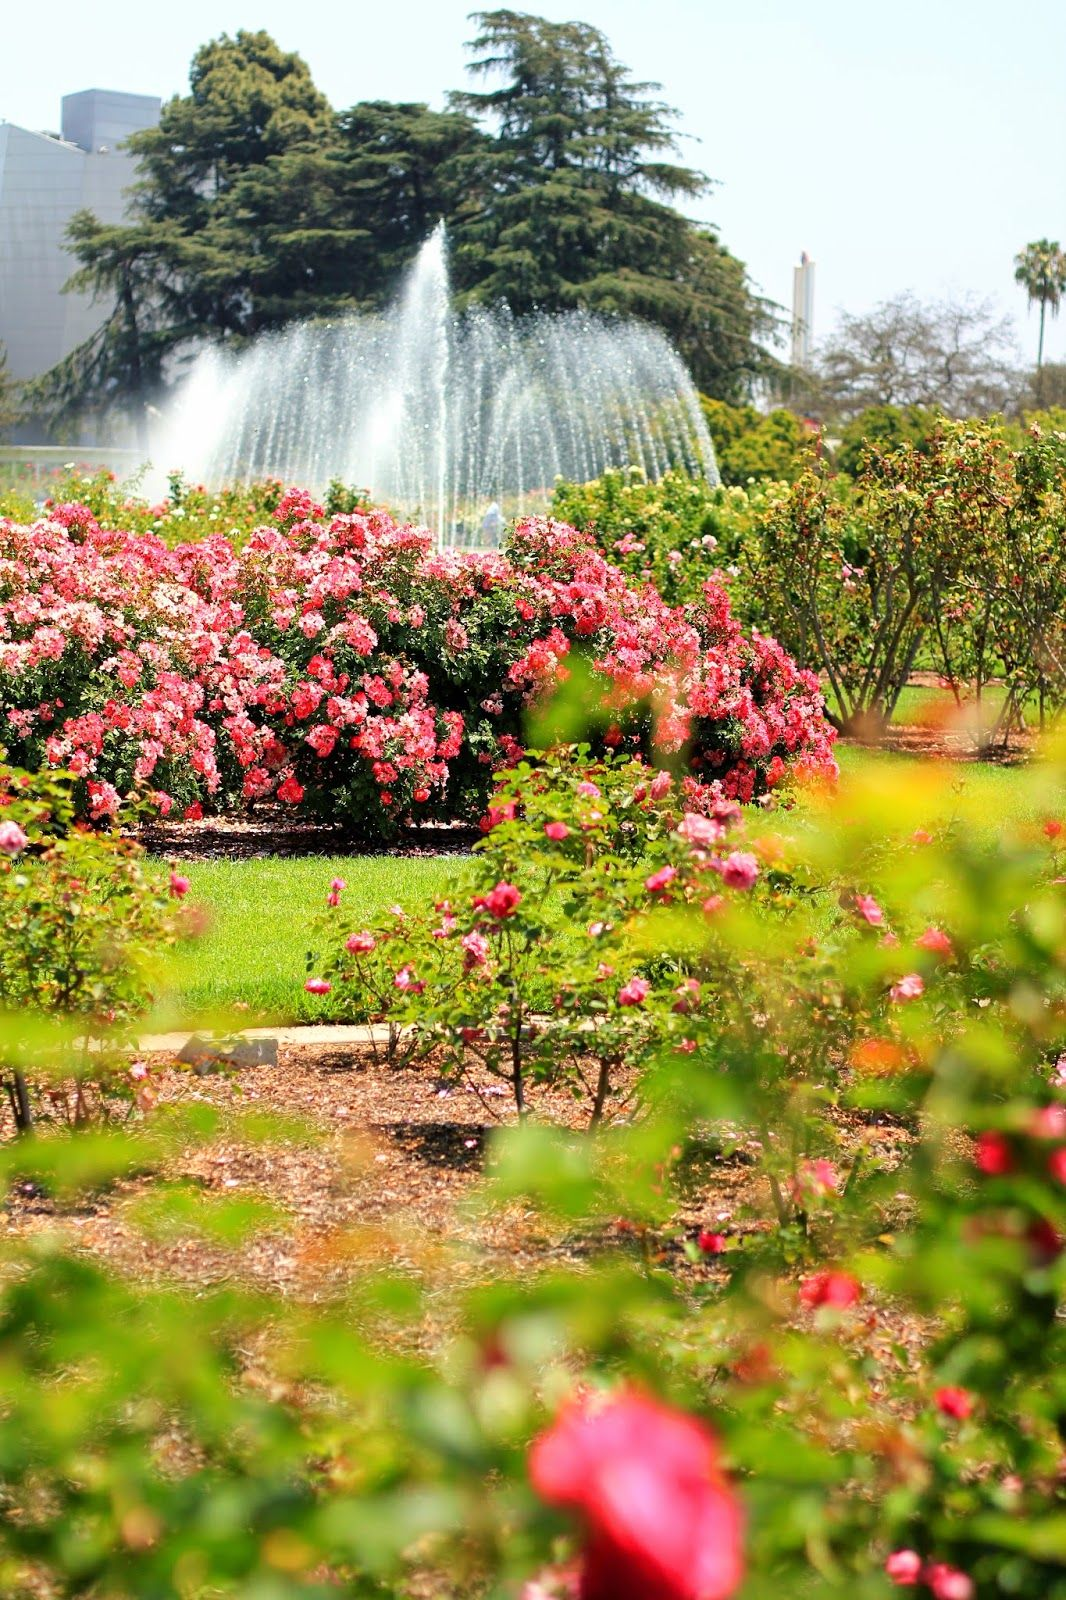 Rose Garden At Exposition Park, Los Angeles   Photo By Mademoiselle Mermaid